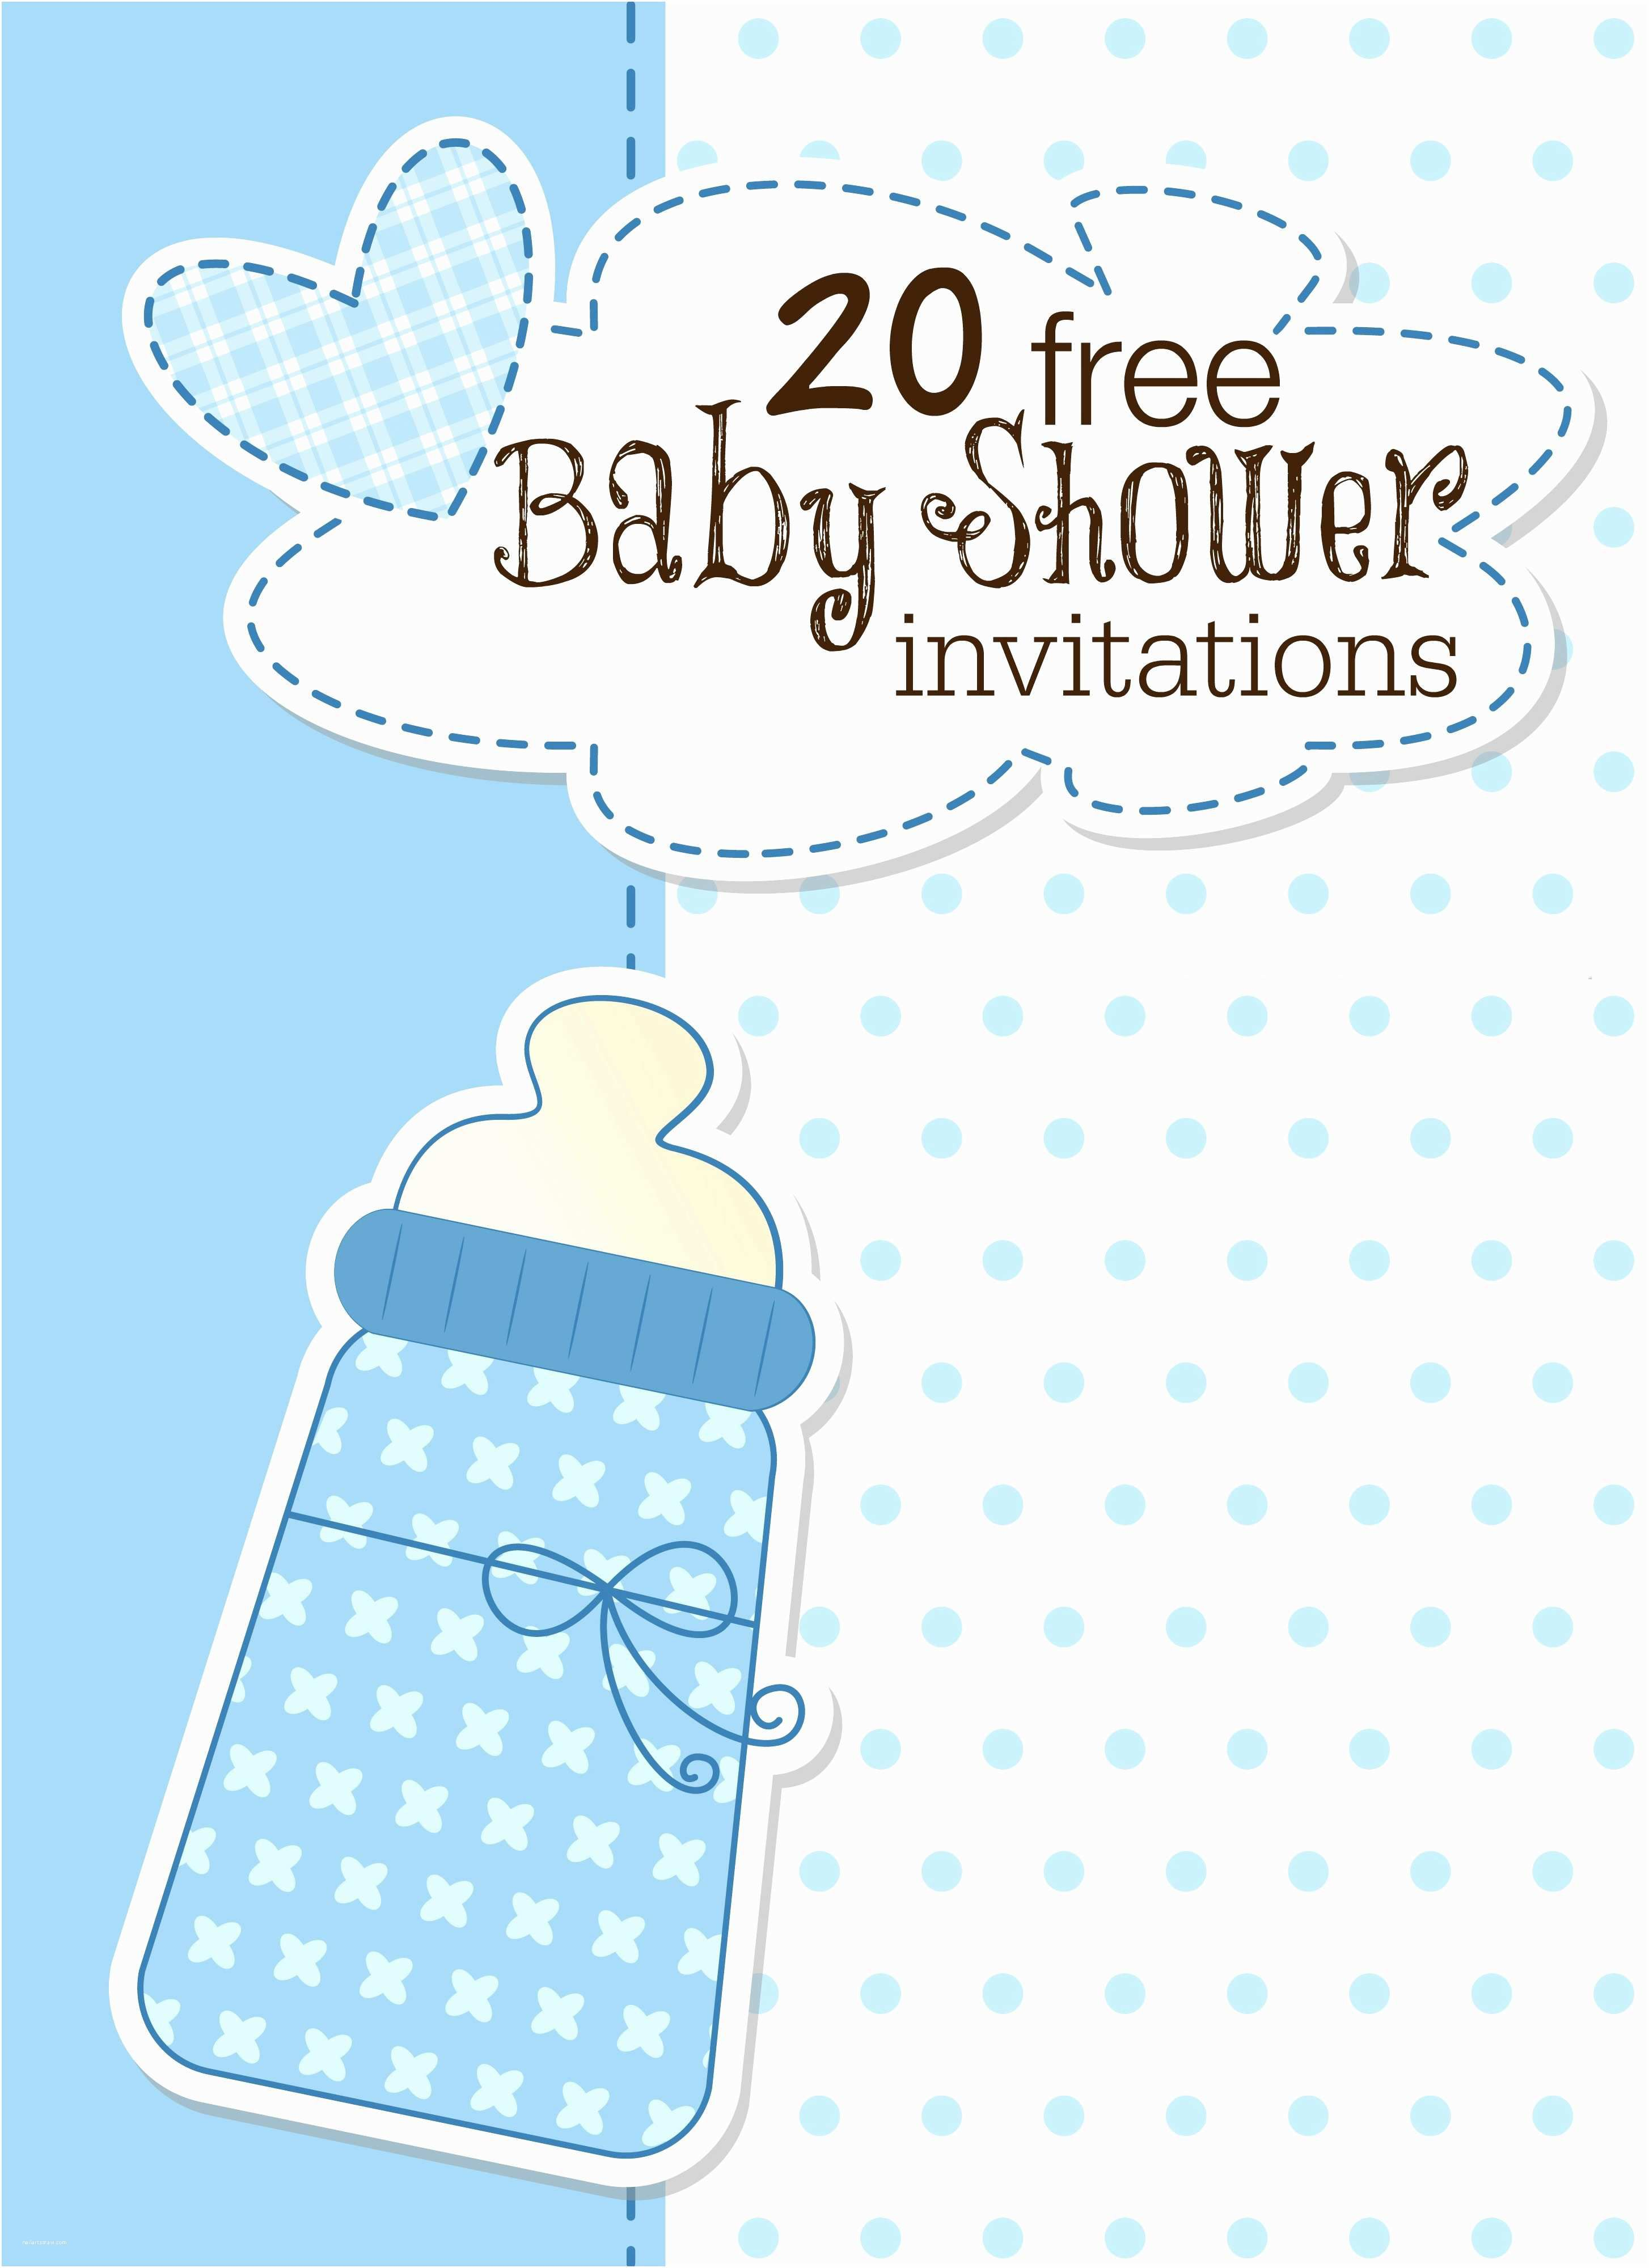 008 Archaicawful Free Baby Shower Invitation Template Idea  Printable Editable Microsoft Word To PrintFull